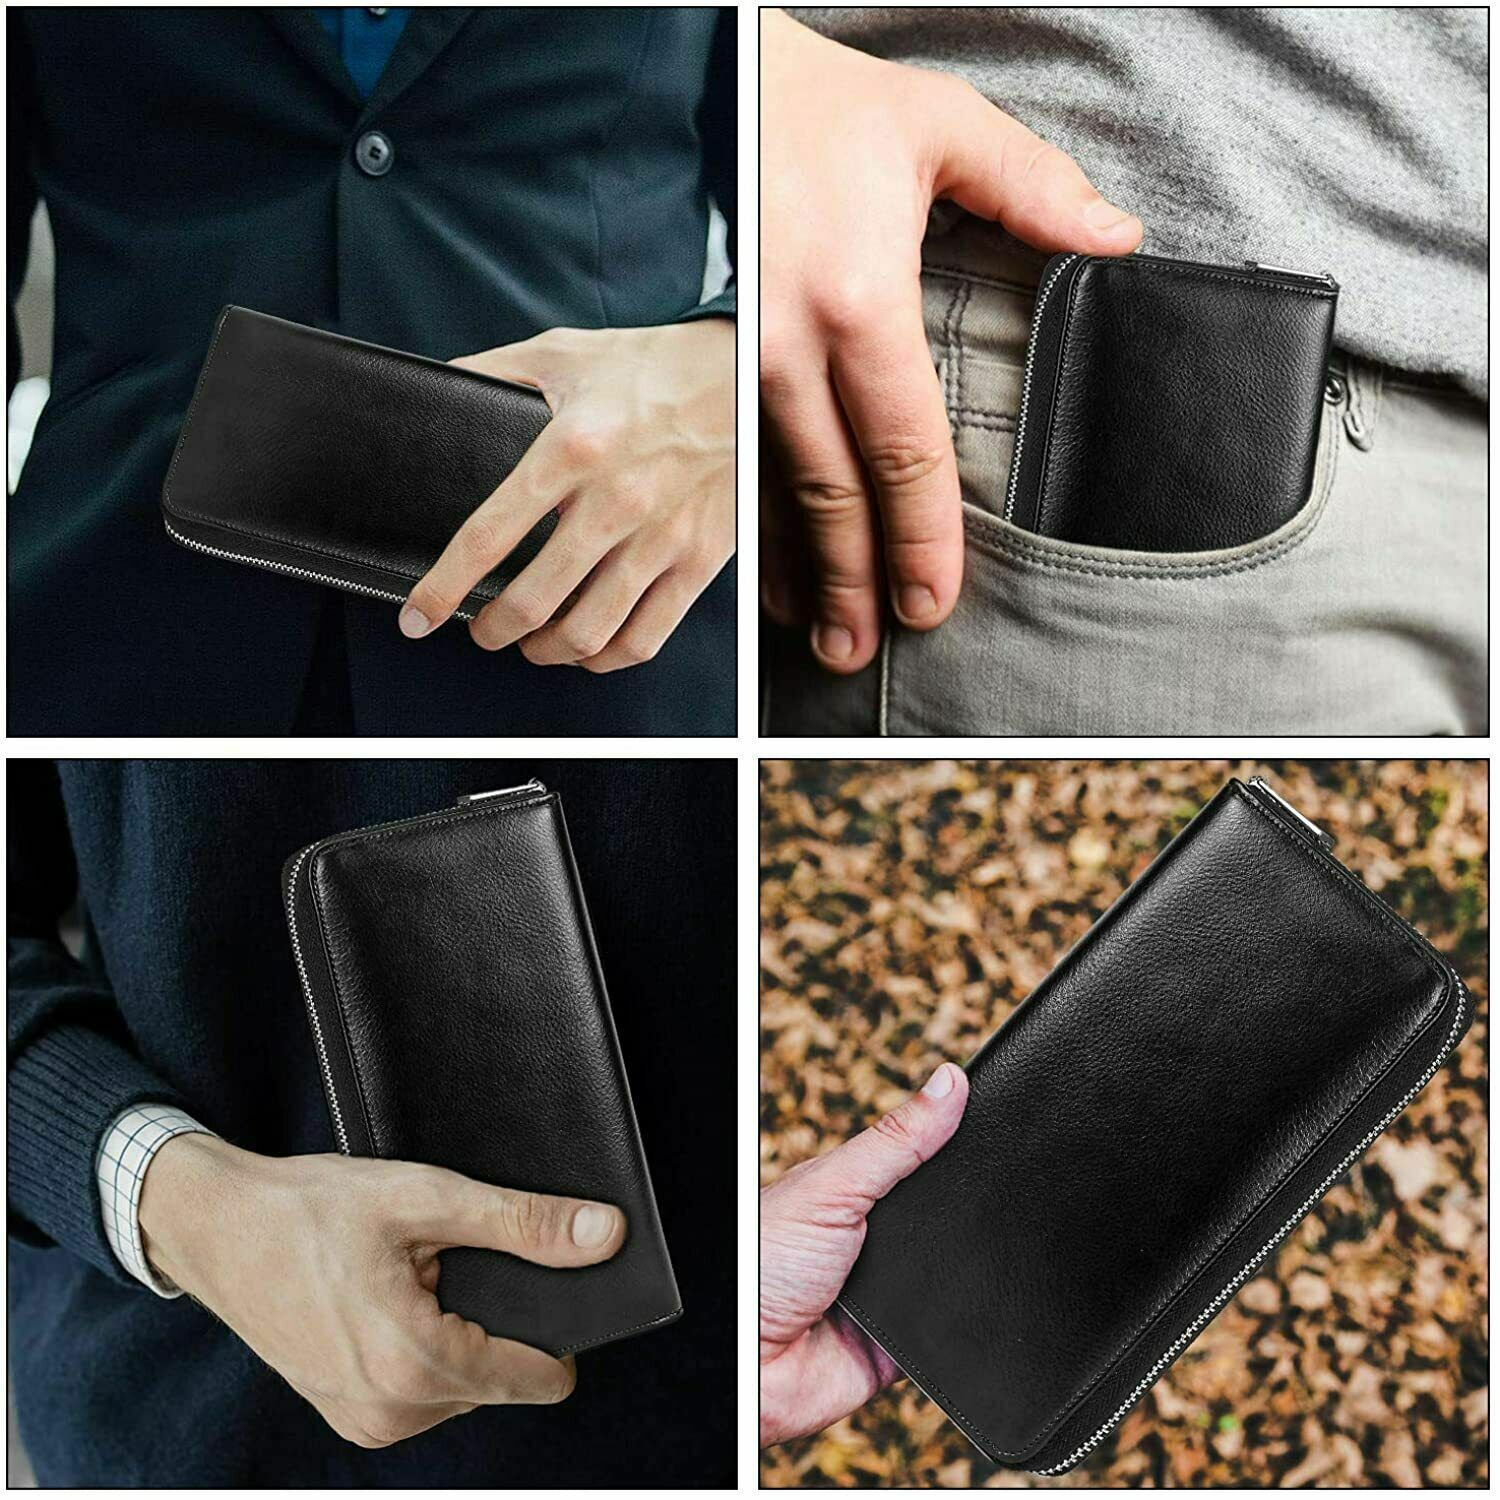 Womens RFID Blocking Leather Wallet Long/Short Zipper Card Holder Case Bag US Clothing, Shoes & Accessories